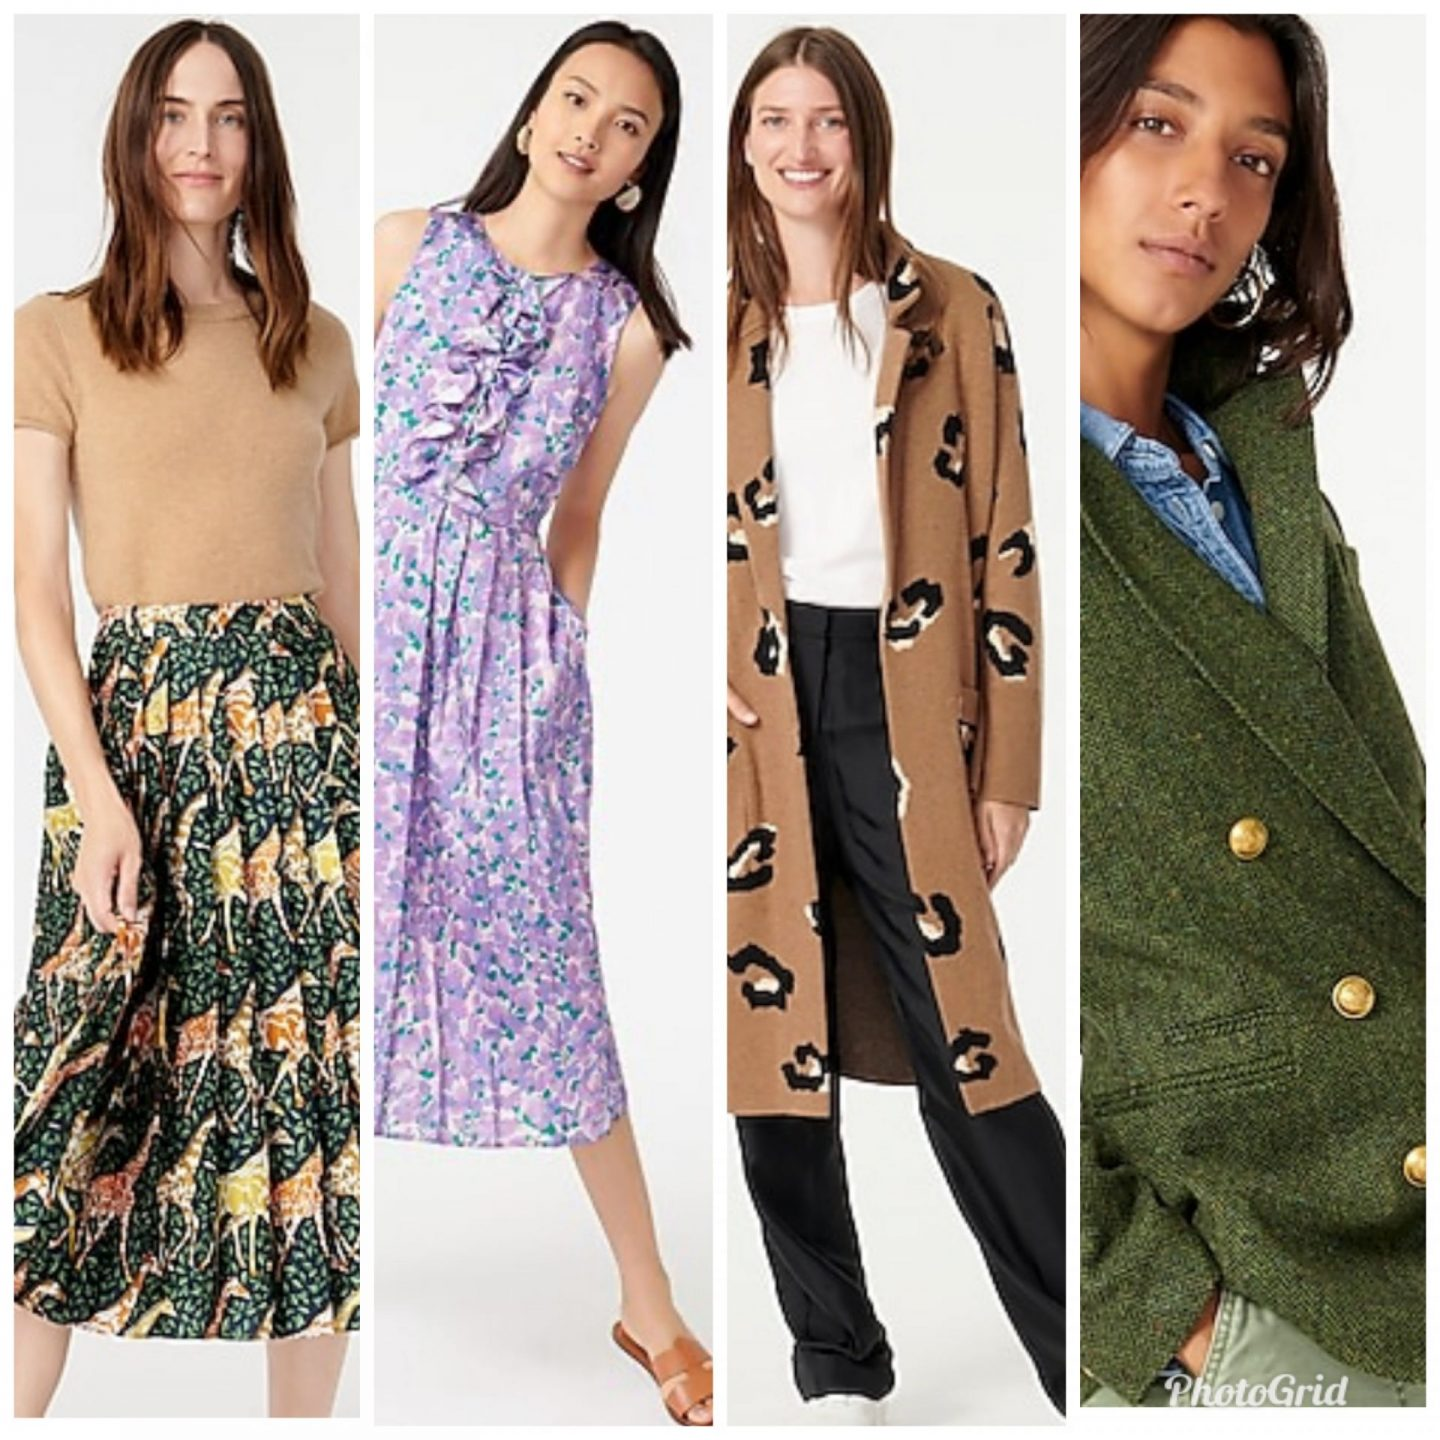 J. Crew Favorites by popular Kentucky fashion blog, Really Rynetta: collage image of a J.Crew Pleated midi skirt in giraffes, J.Crew tweed jacket, J.Crew purple floral dress, and J.Crew cashmere sweater.